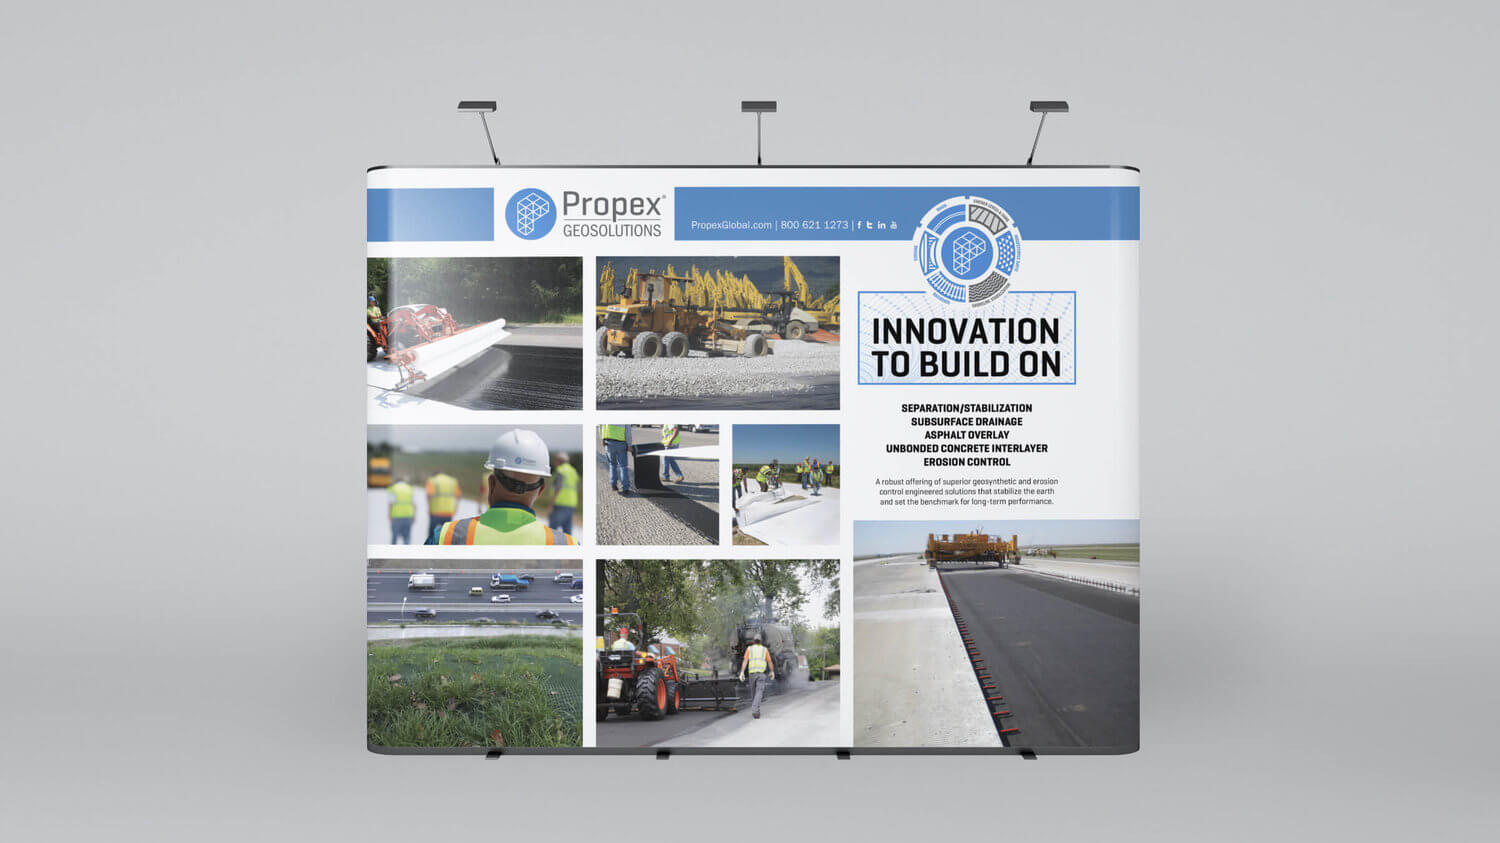 propex-geosolutions-tradeshow-booth.jpg